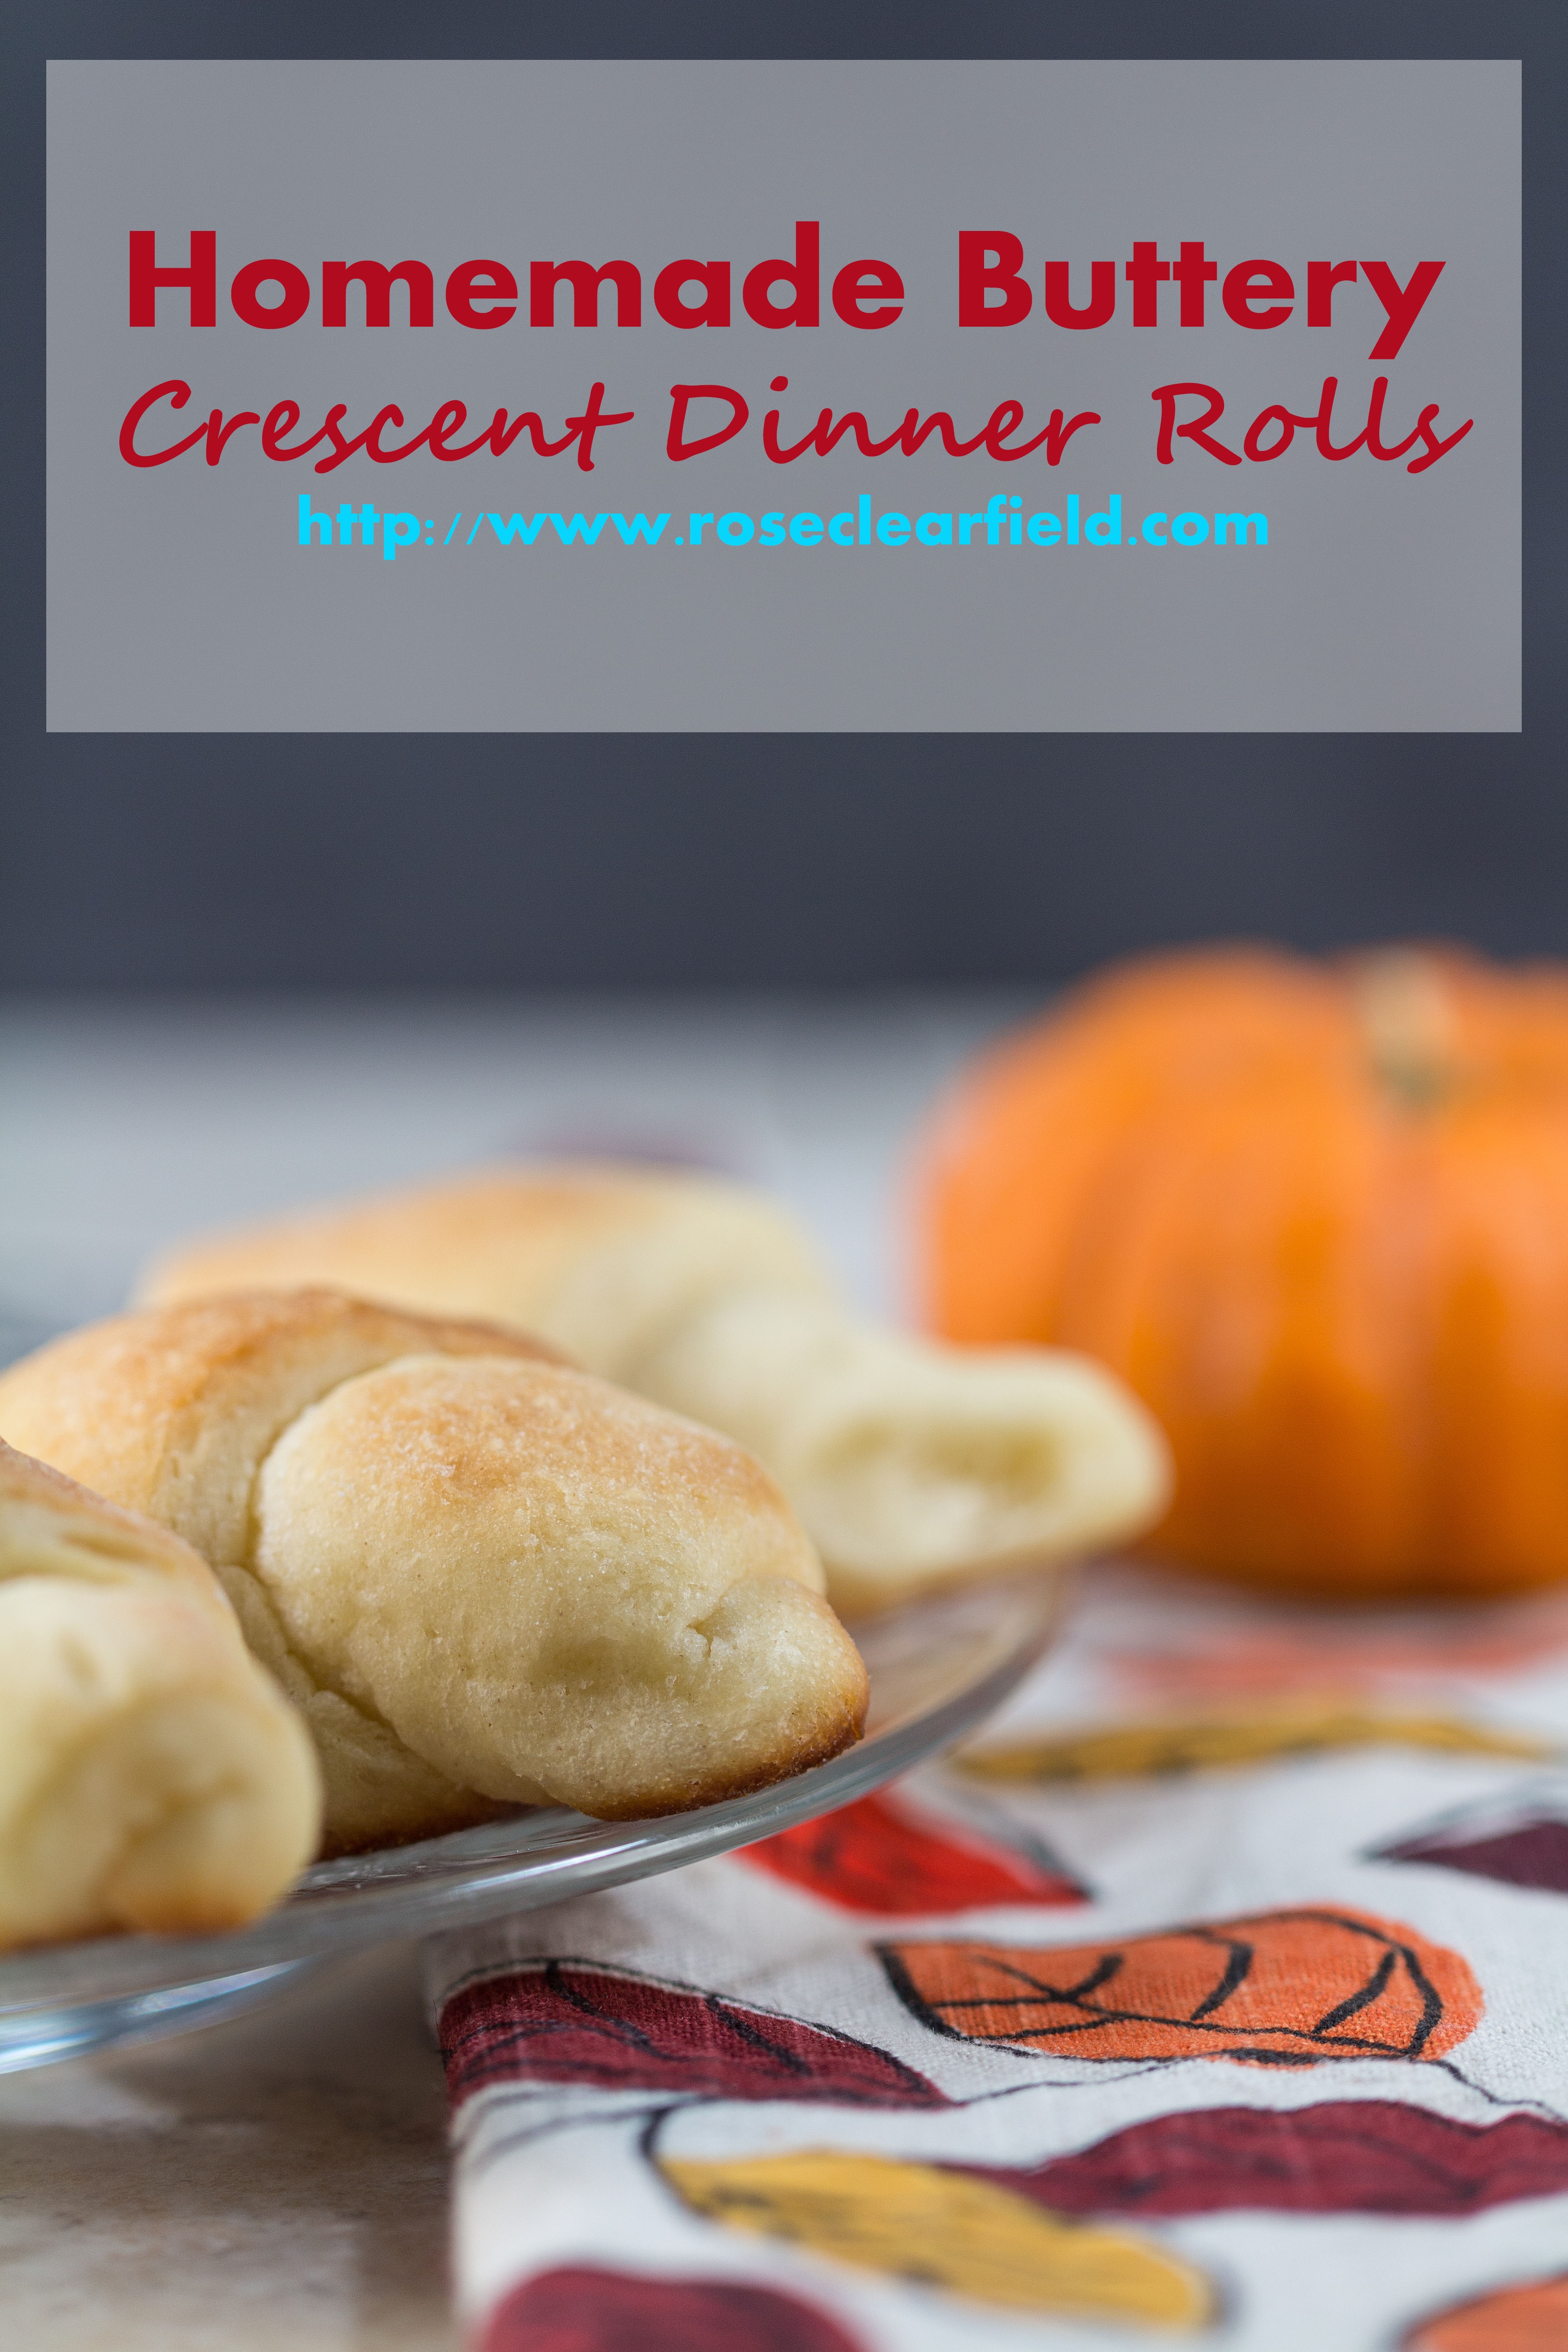 Homemade Buttery Crescent Dinner Rolls | https://www.roseclearfield.com